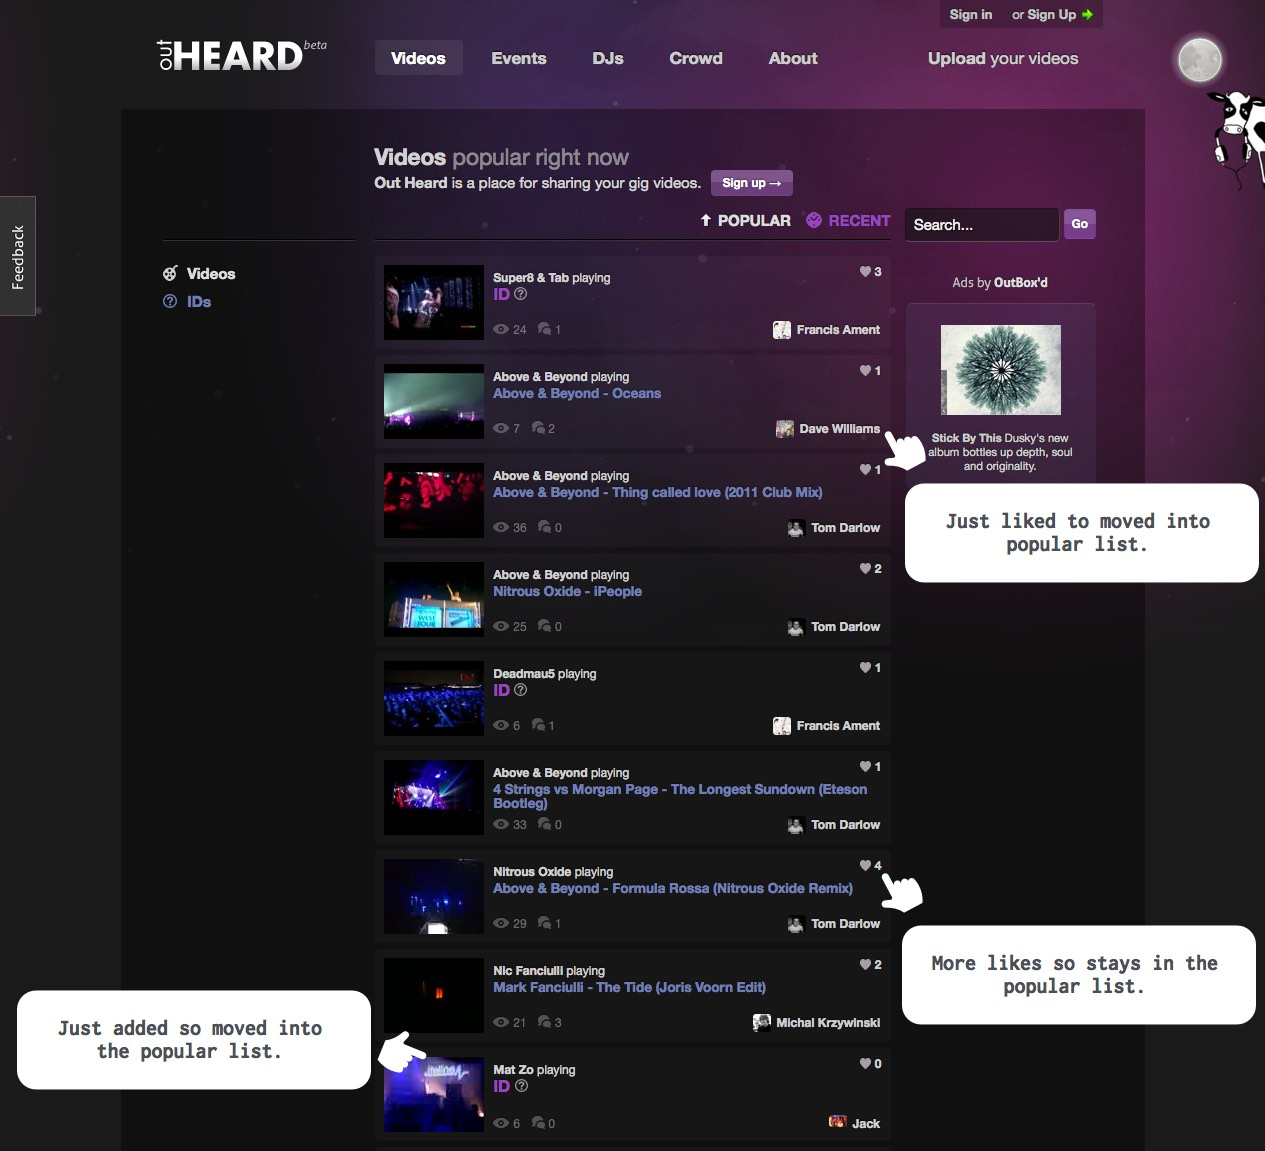 Screenshot of the popular videos on outheard.tv